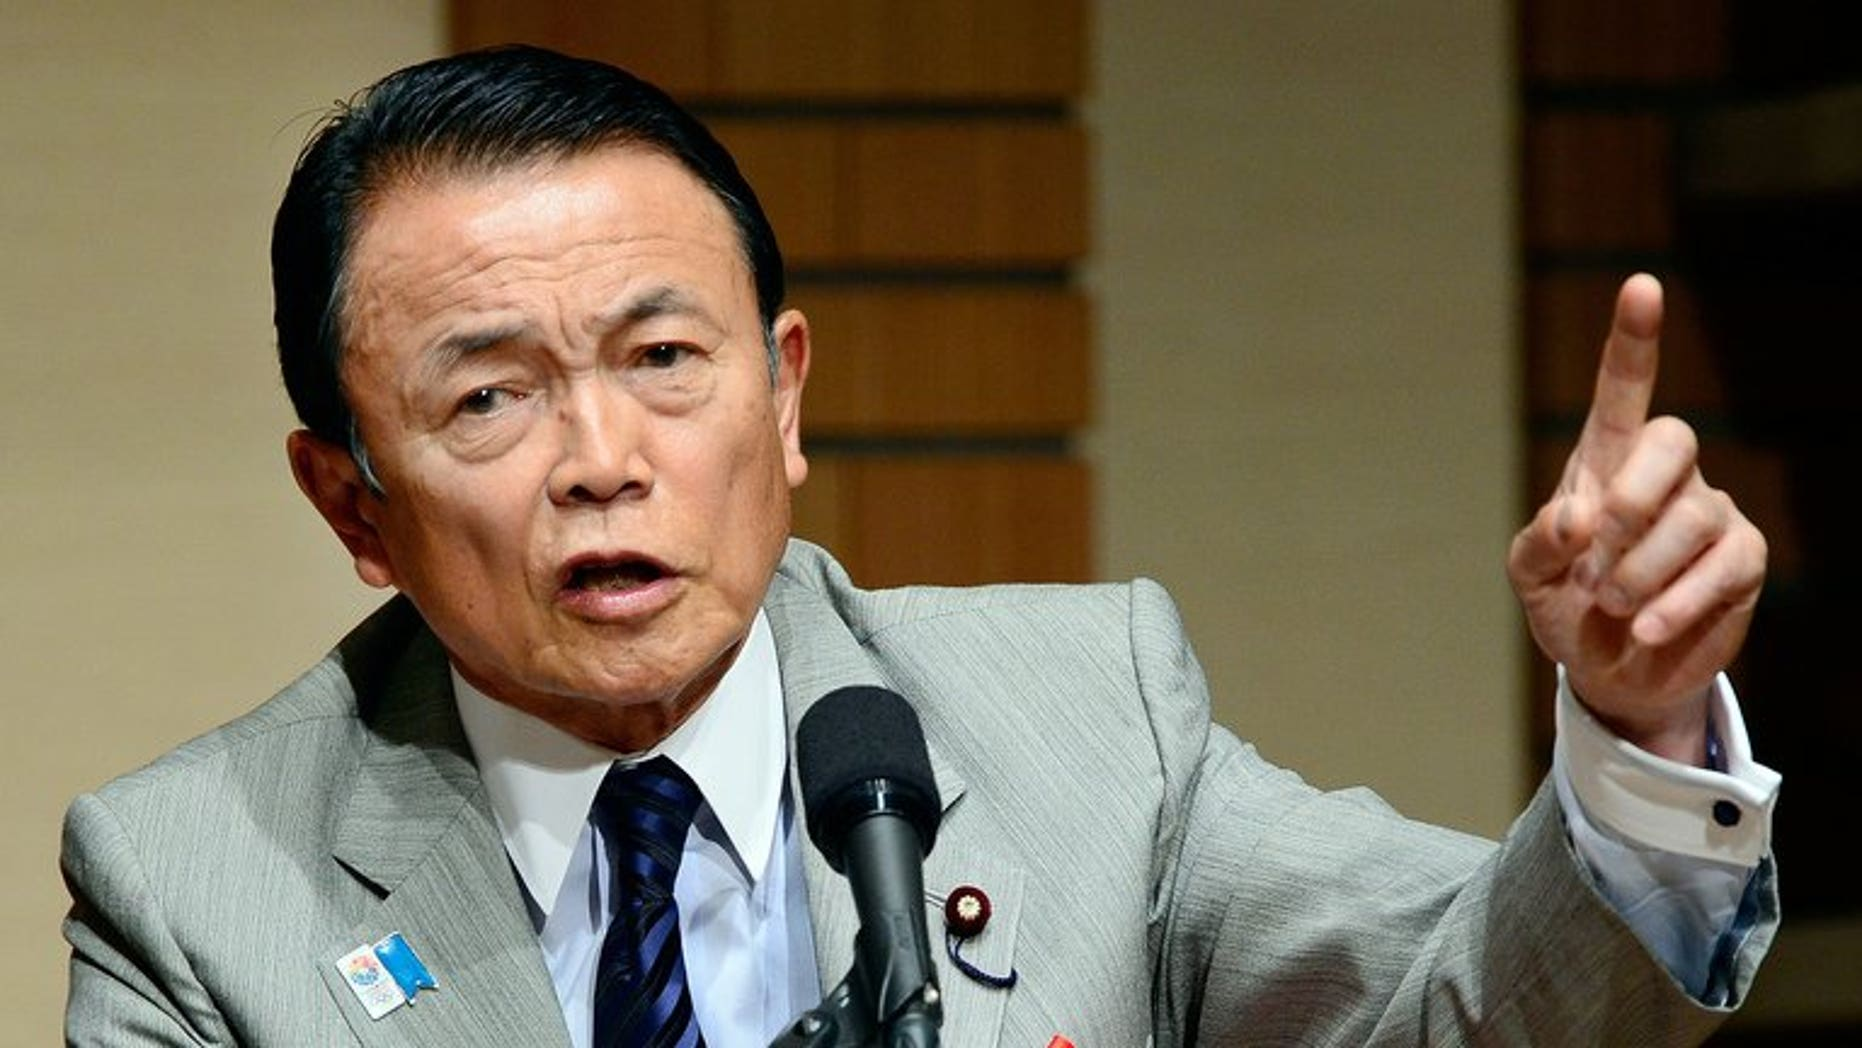 This file picture taken on June 28, 2013 shows Taro Aso at a press conference in Tokyo. Japan's gaffe-prone deputy prime minister has said Tokyo could learn from Nazi Germany when it comes to constitutional reform, prompting a rebuke from a Jewish human rights group.